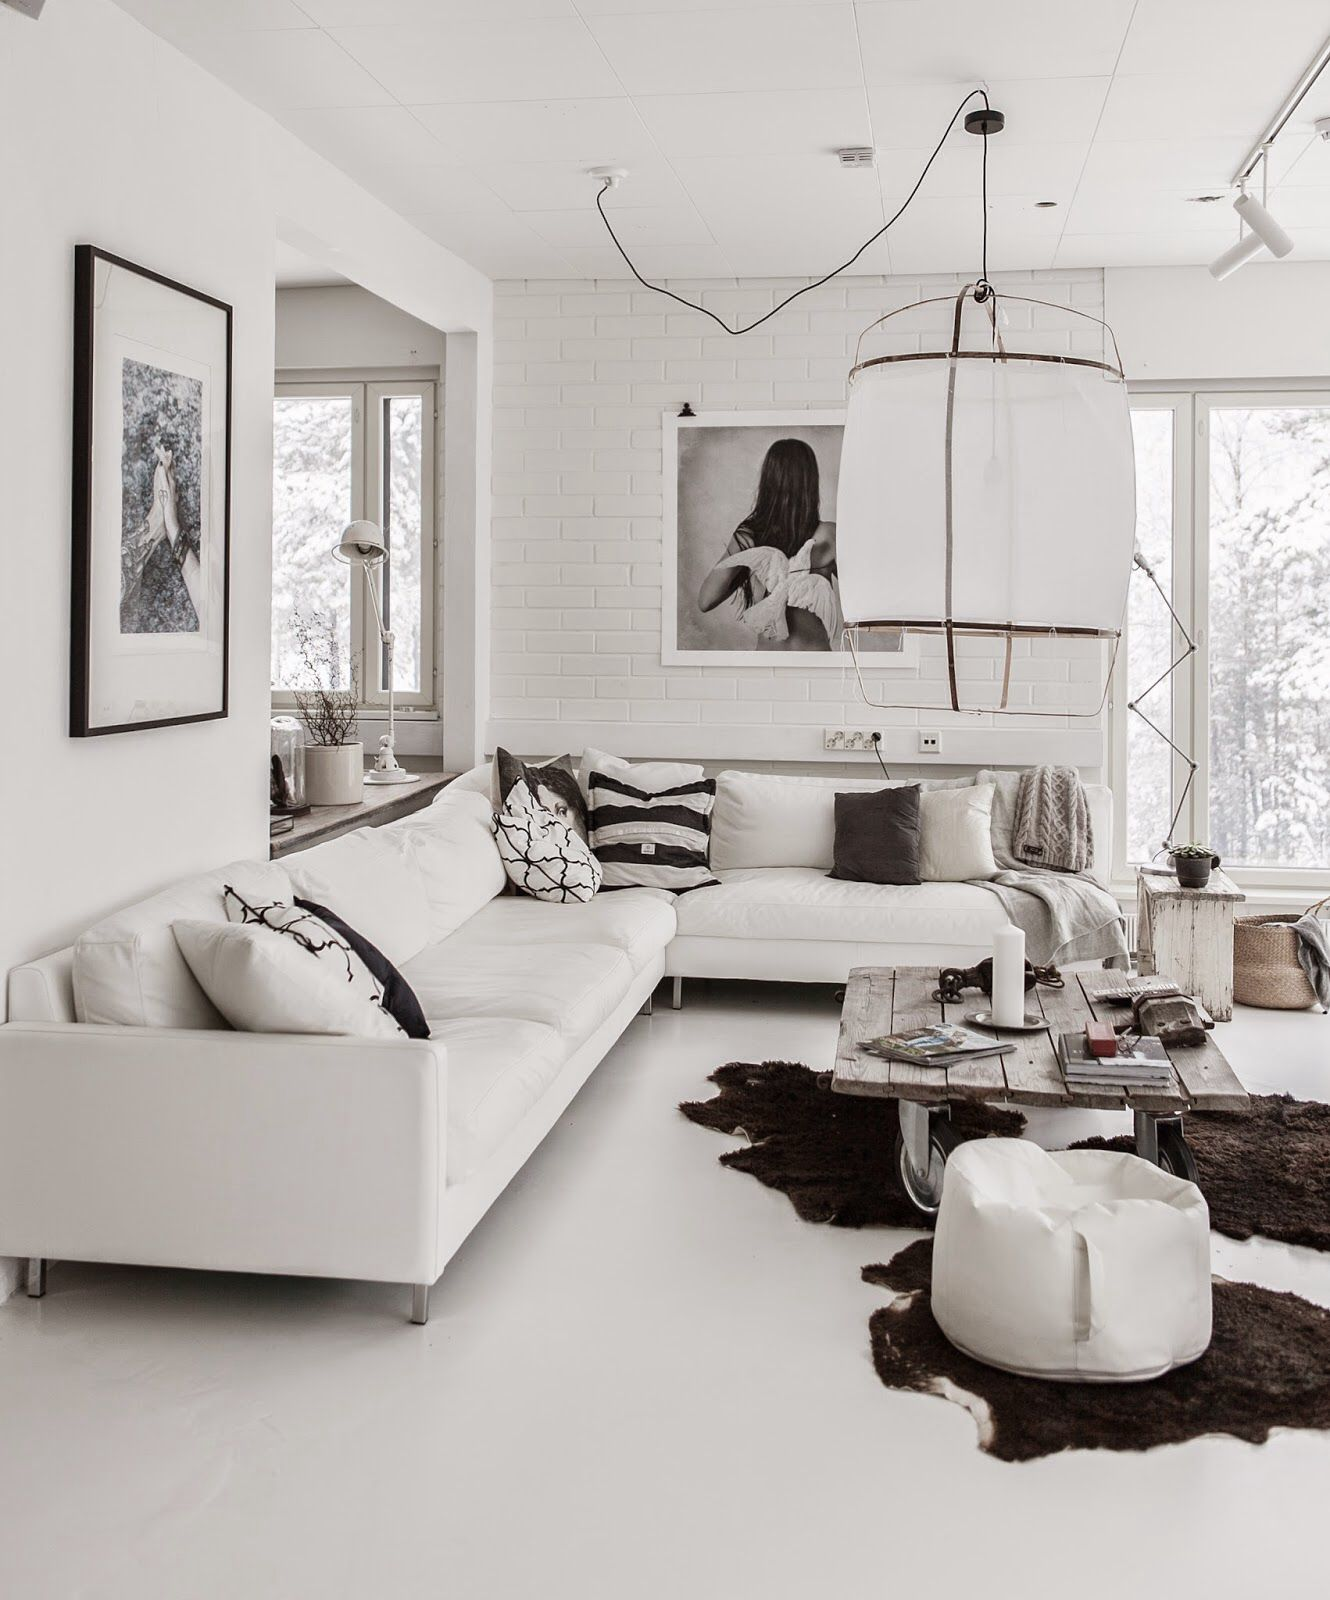 Bedrooms Scandinavian Living Roomsscandinavian